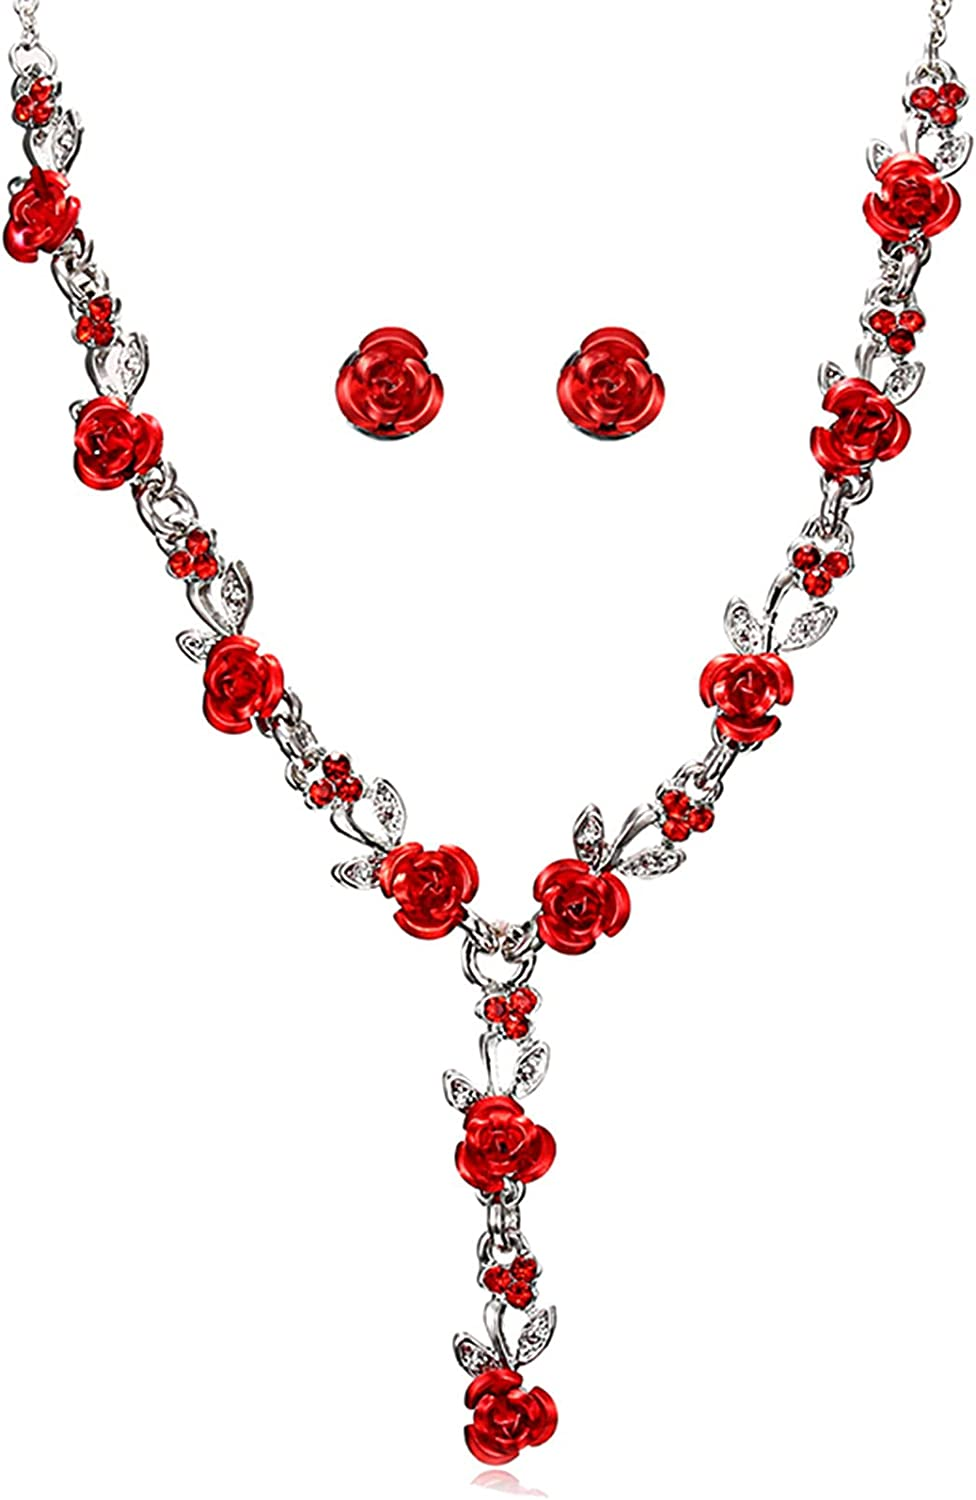 Glimkis Rose Flower Jewelry Set Pendant Statement Collar Charm Necklace and Earrings Women For Bride,Red